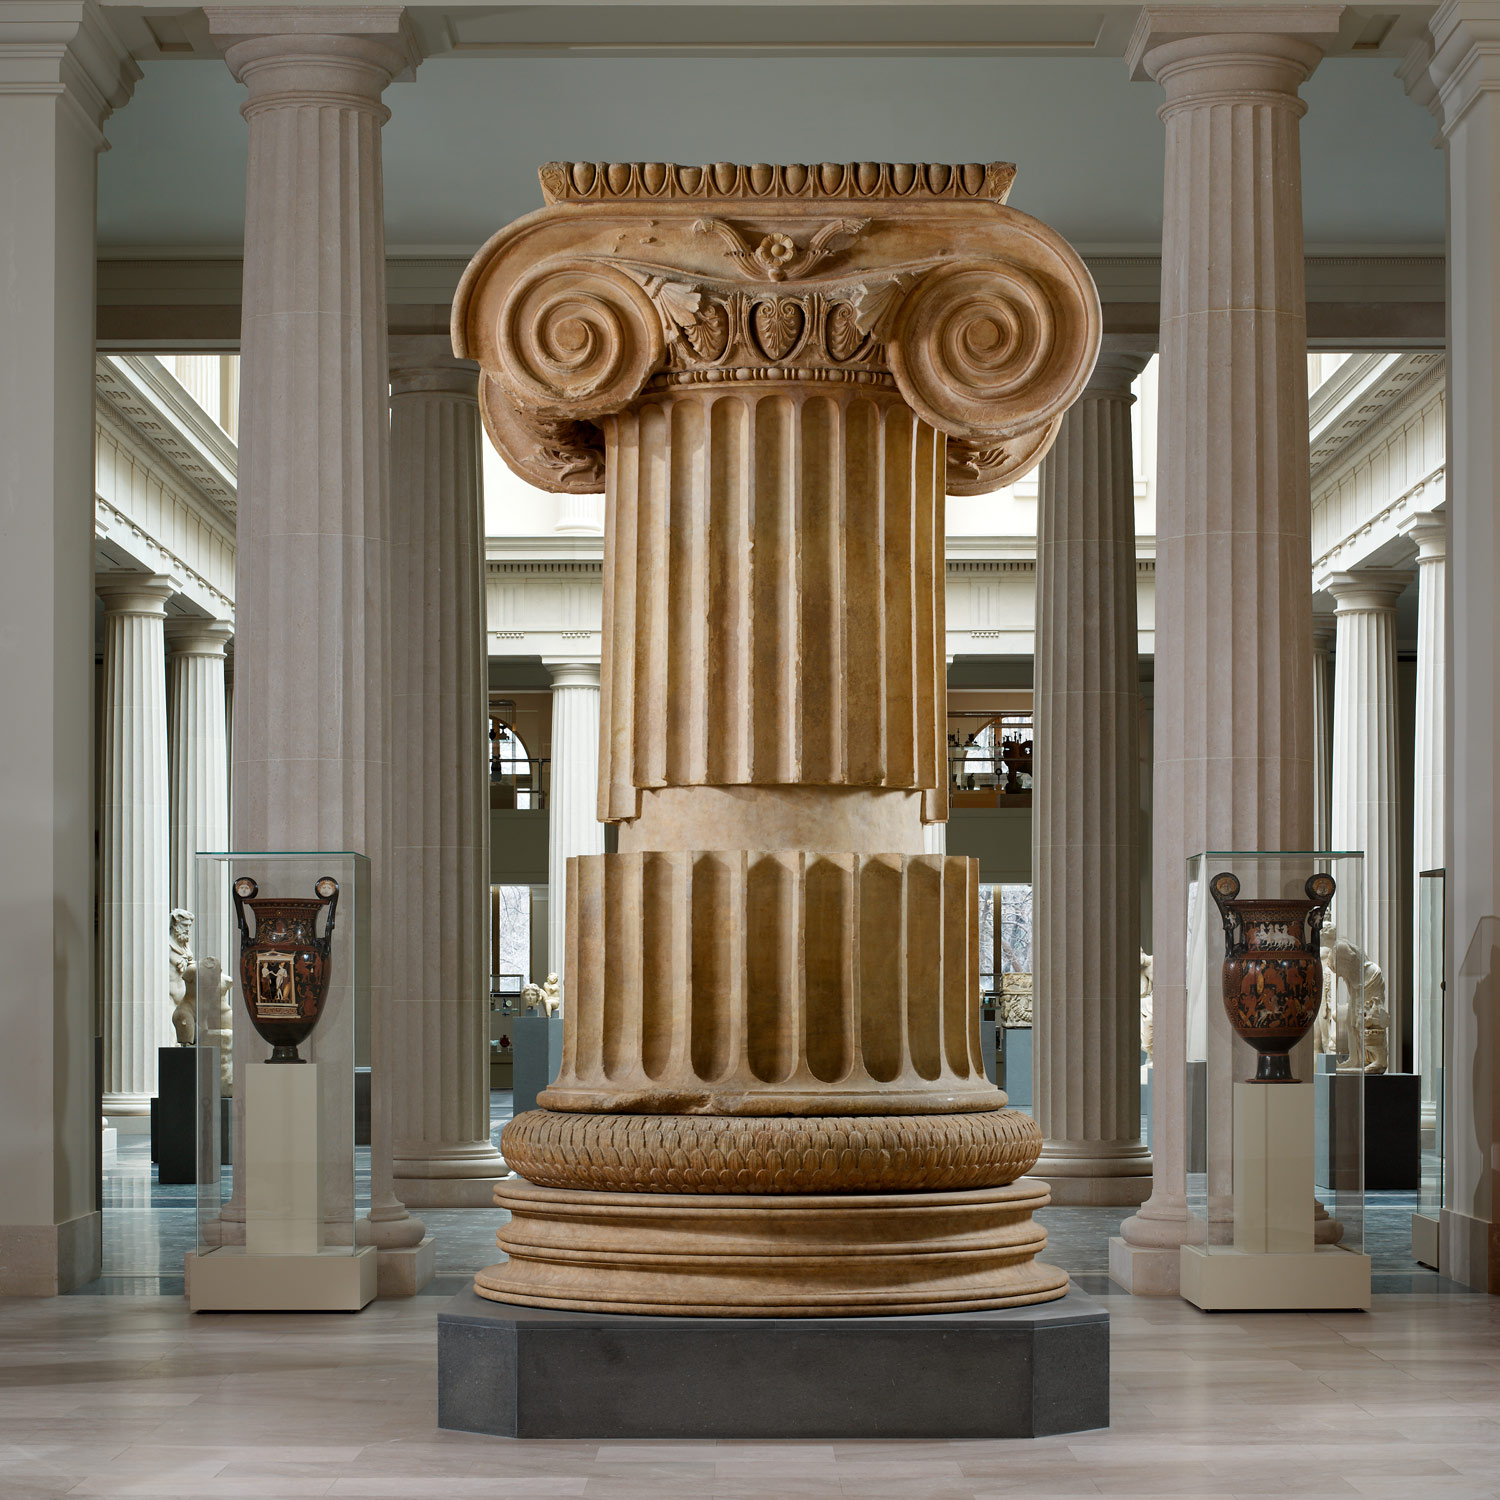 greek essay mythology research paper architecture in ancient essay  architecture in ancient essay heilbrunn timeline of art marble column from the temple of artemis at